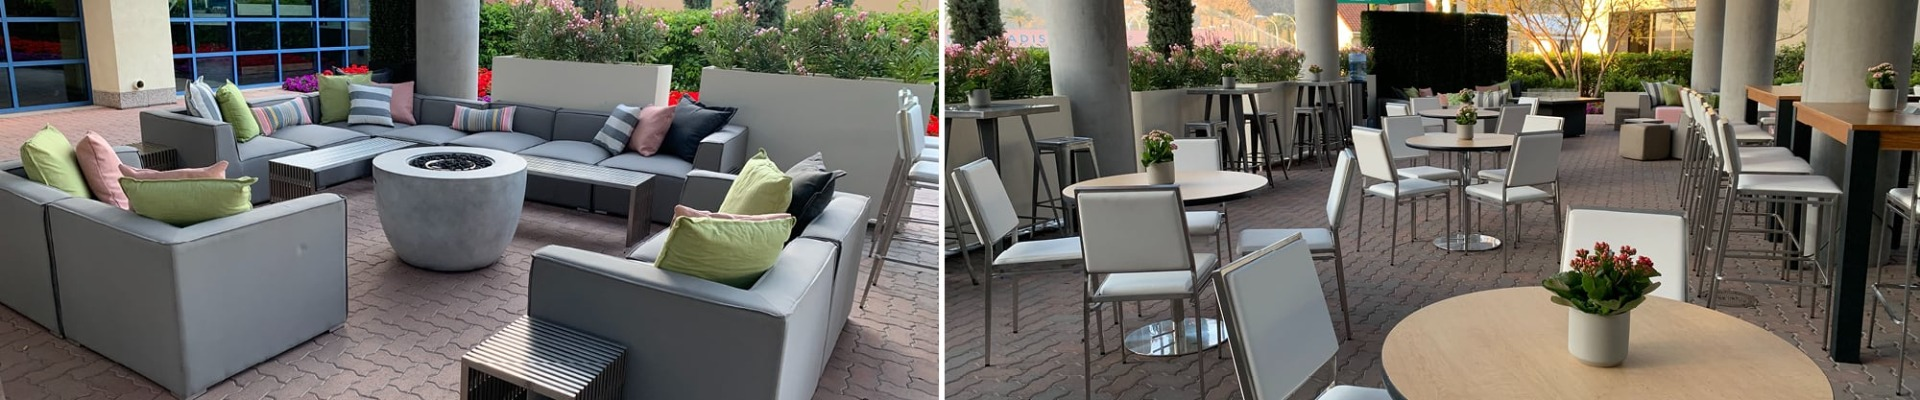 gray outdoor lounge